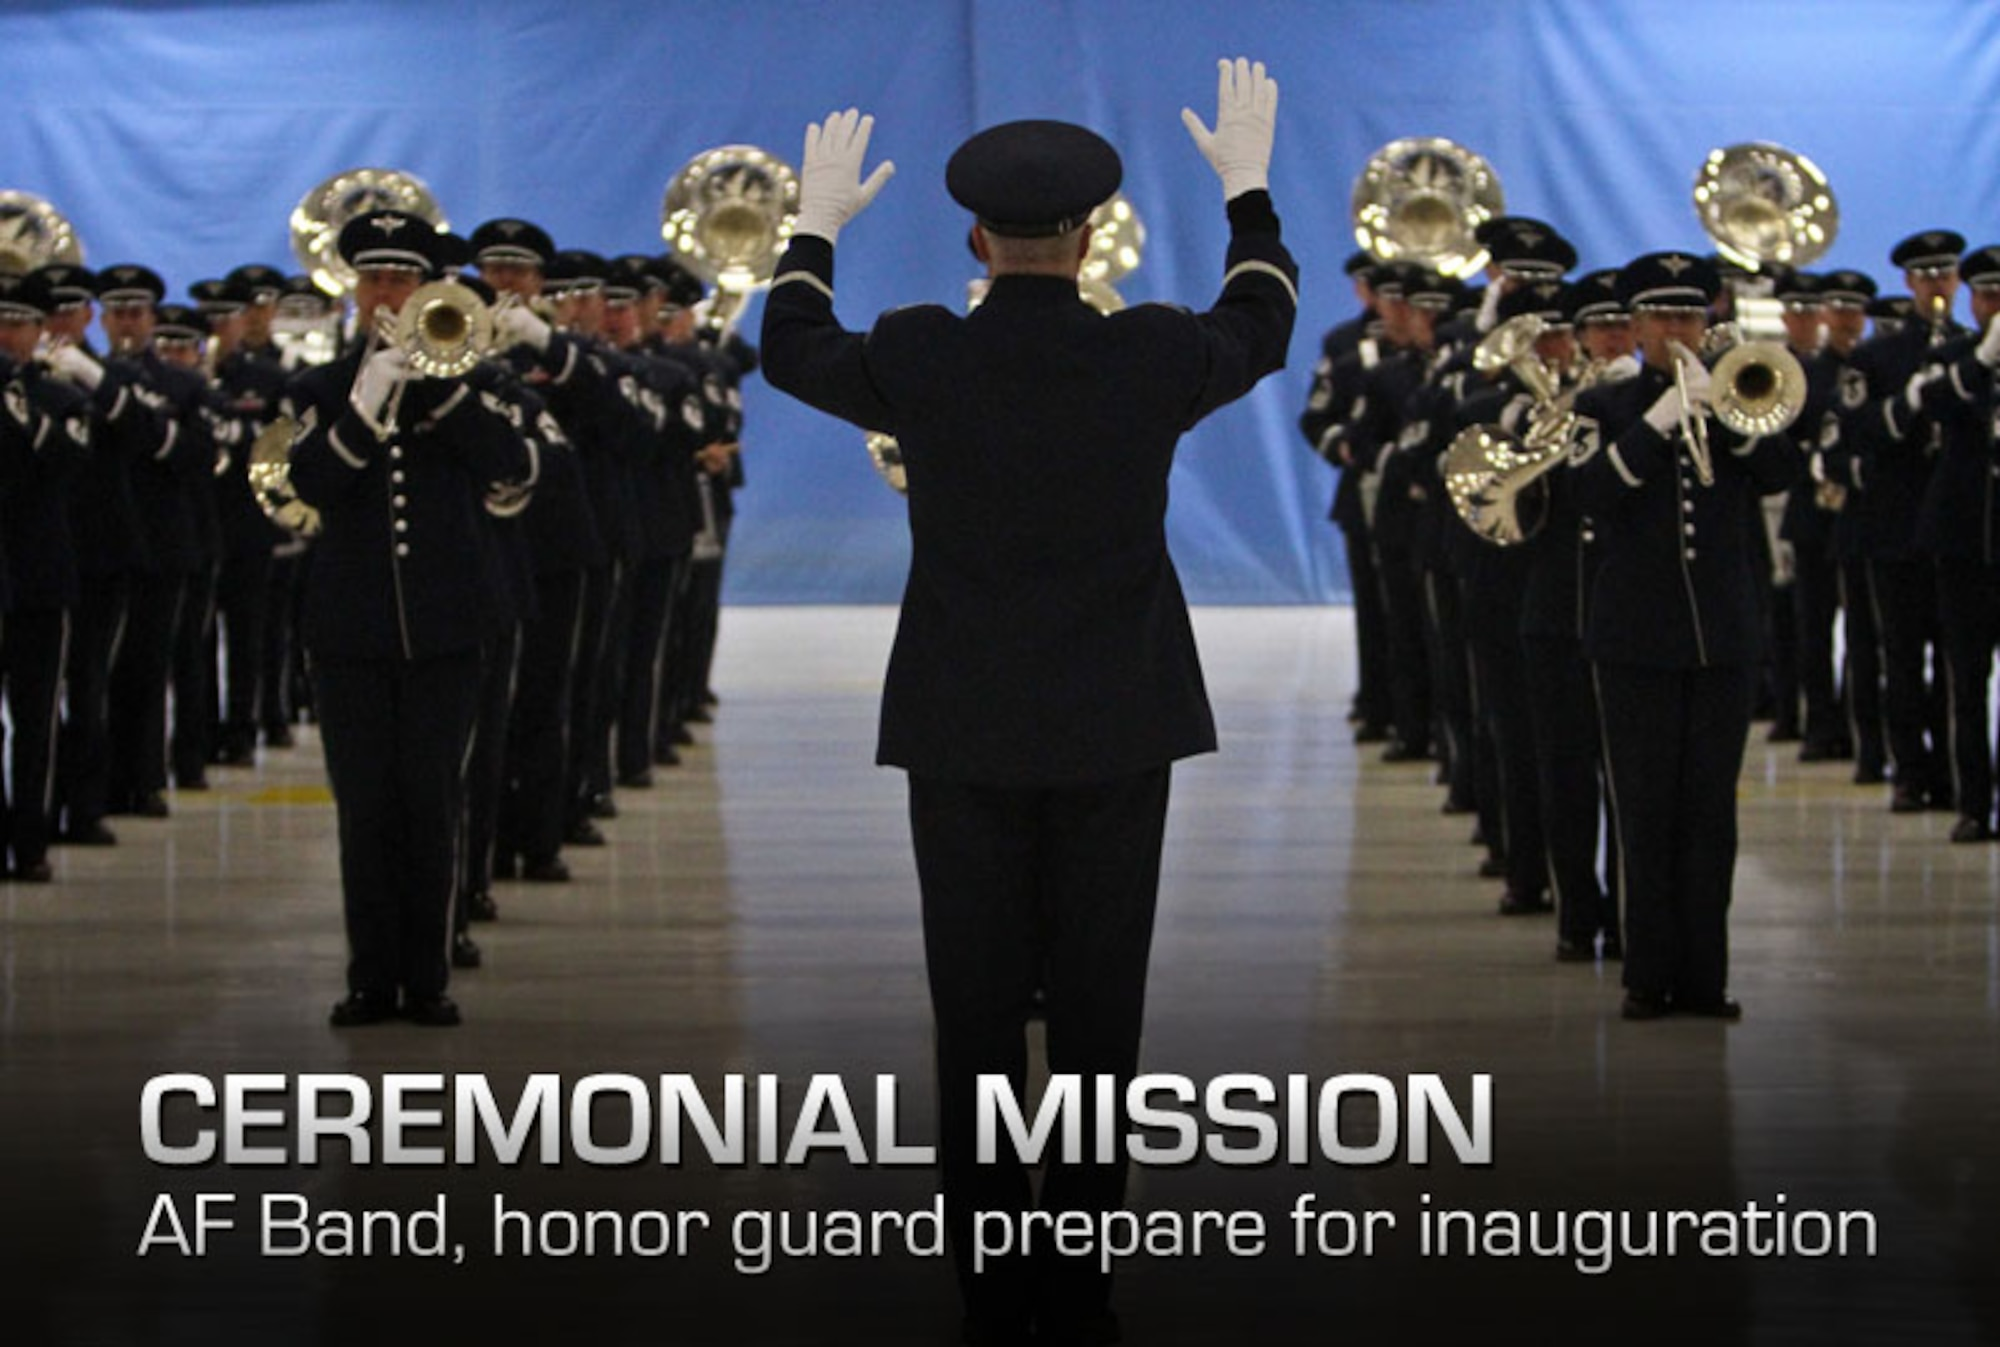 Col. Larry H. Lang conducts during a dress rehearsal for the Inaugural Parade at Joint Base Andrews, Md., Jan. 11, 2013. Colonel Lang is the commander of the U.S. Air Force Band. (DOD photo/Claudette Roulo)